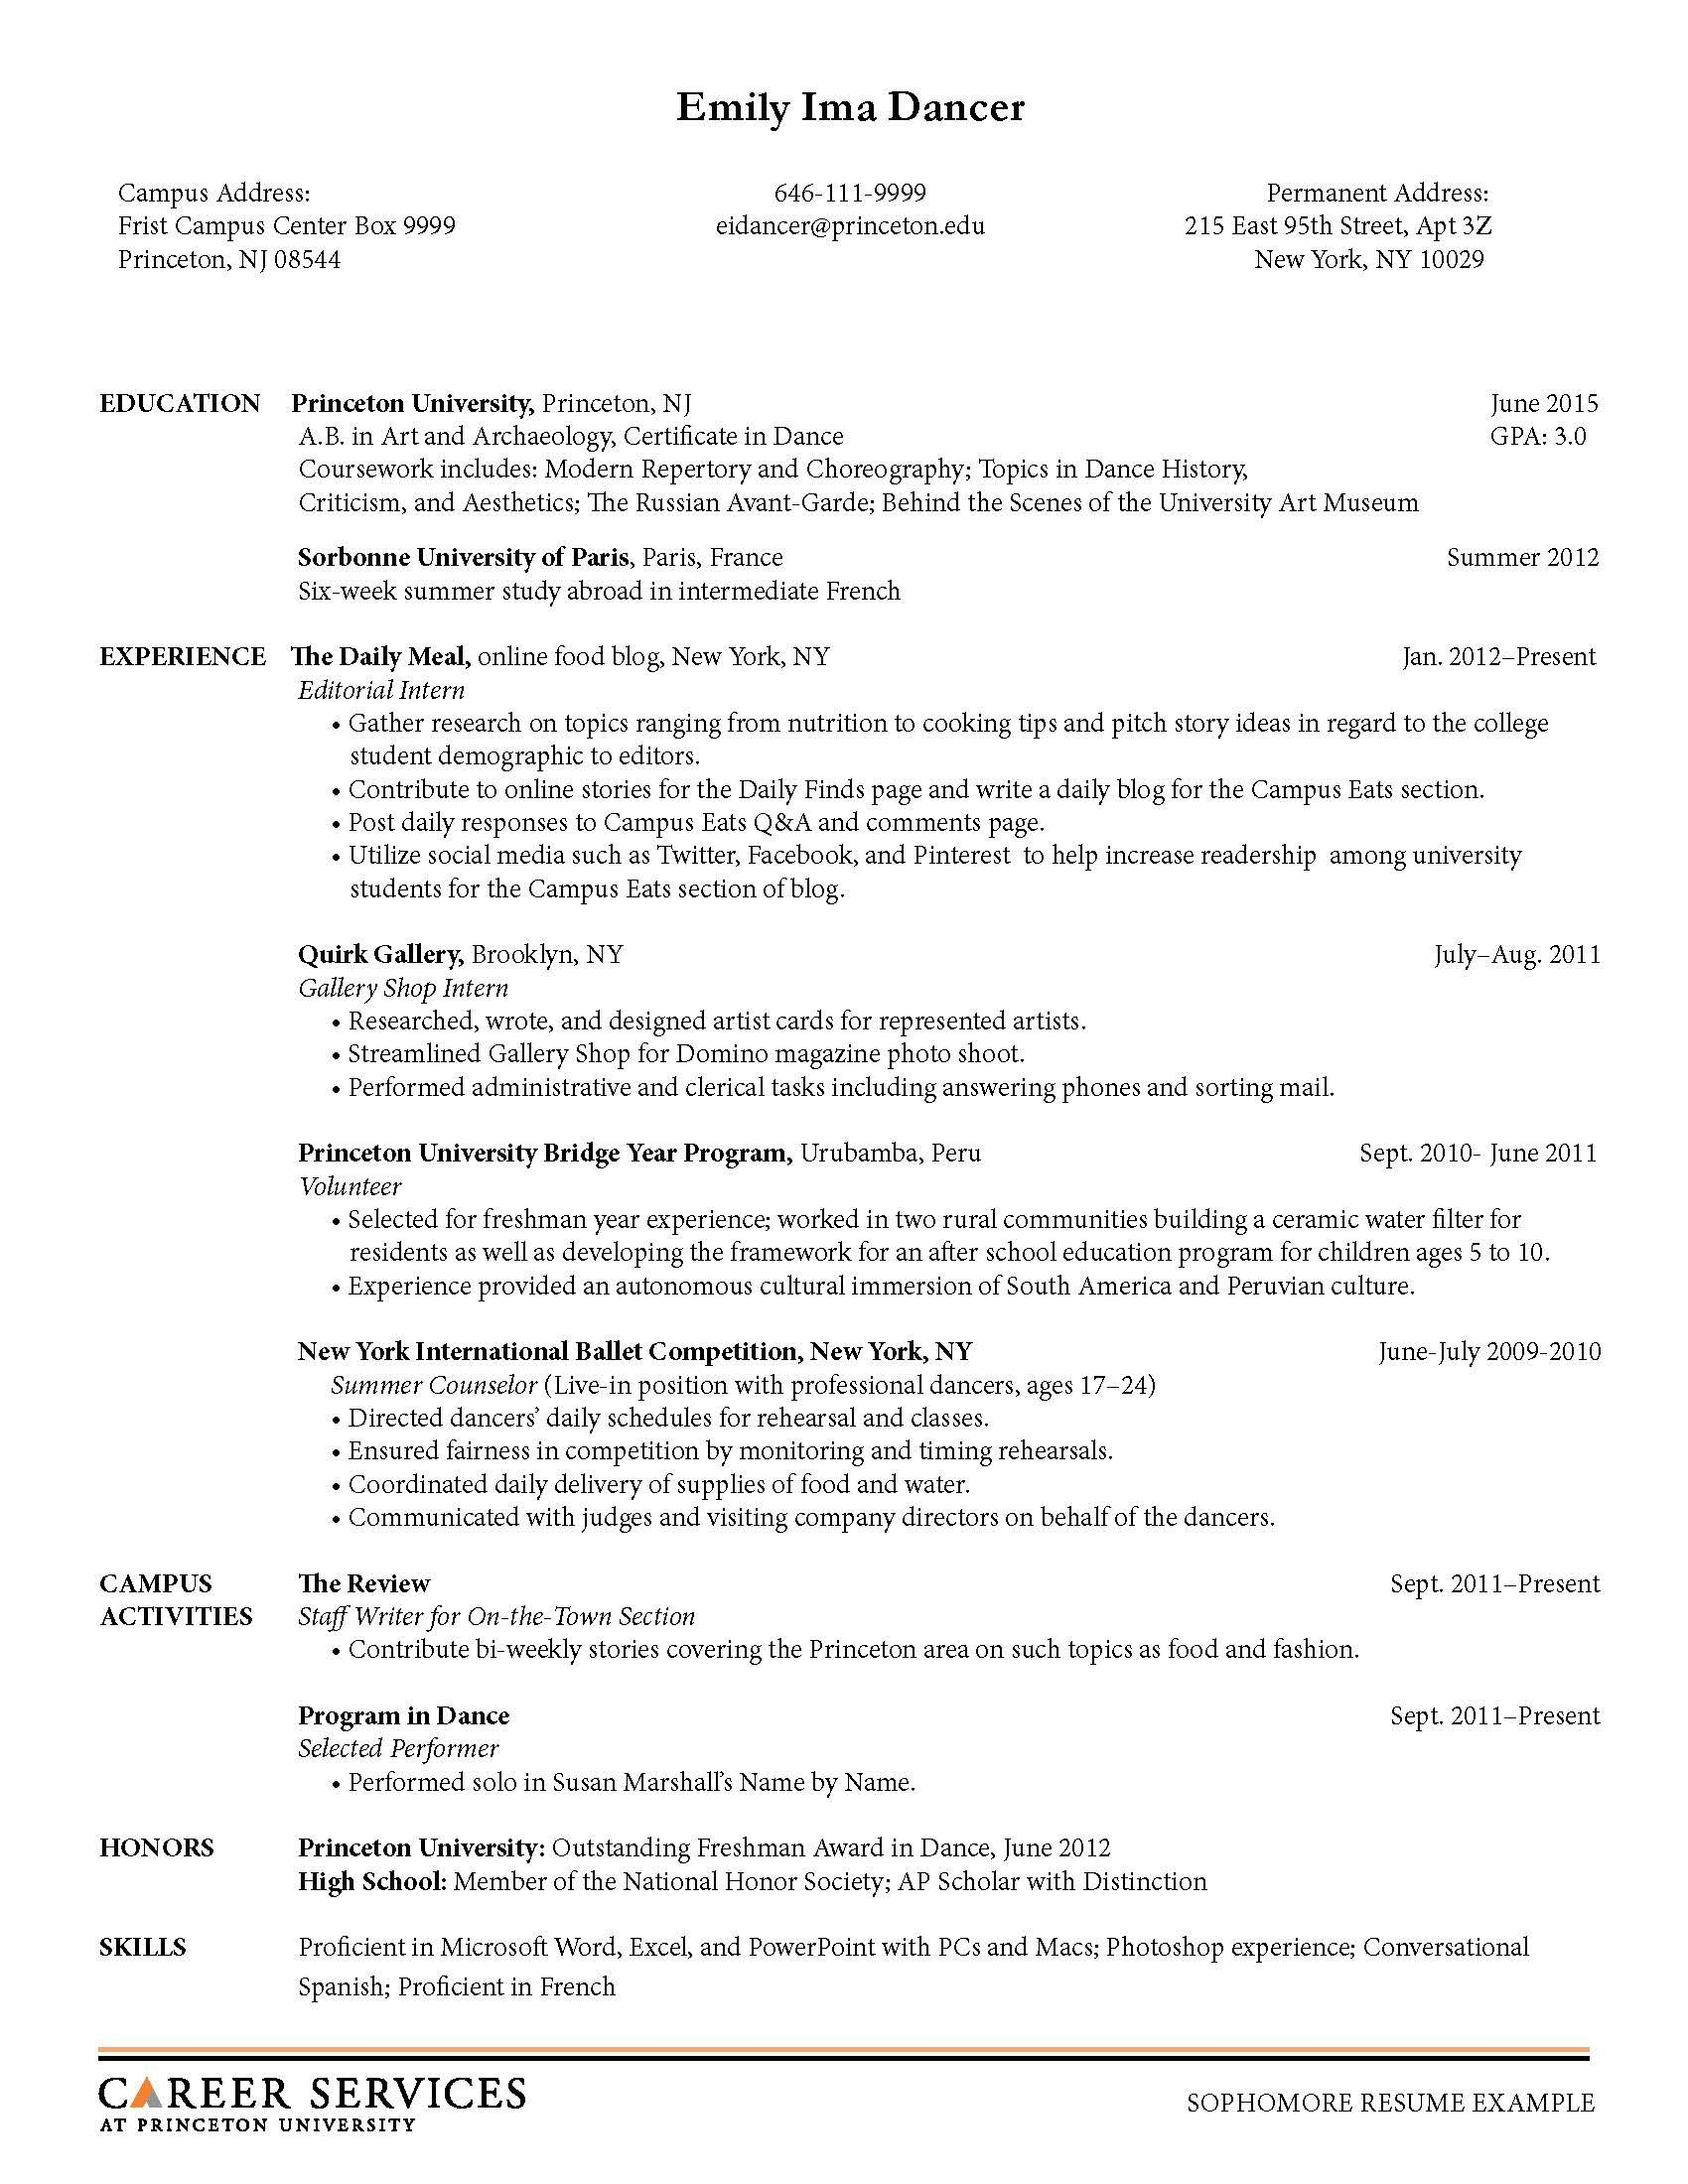 Opposenewapstandardsus  Pretty Sample Resume Resume And Career On Pinterest With Goodlooking Hybrid Resume Example Besides Resume Examples For Bank Teller Furthermore Most Popular Resume Format With Endearing Management Consulting Resume Sample Also Writing A Functional Resume In Addition List Of Resume Verbs And Create My Resume Online Free As Well As Interactive Resume Builder Additionally Email Cover Letter For Resume From Pinterestcom With Opposenewapstandardsus  Goodlooking Sample Resume Resume And Career On Pinterest With Endearing Hybrid Resume Example Besides Resume Examples For Bank Teller Furthermore Most Popular Resume Format And Pretty Management Consulting Resume Sample Also Writing A Functional Resume In Addition List Of Resume Verbs From Pinterestcom